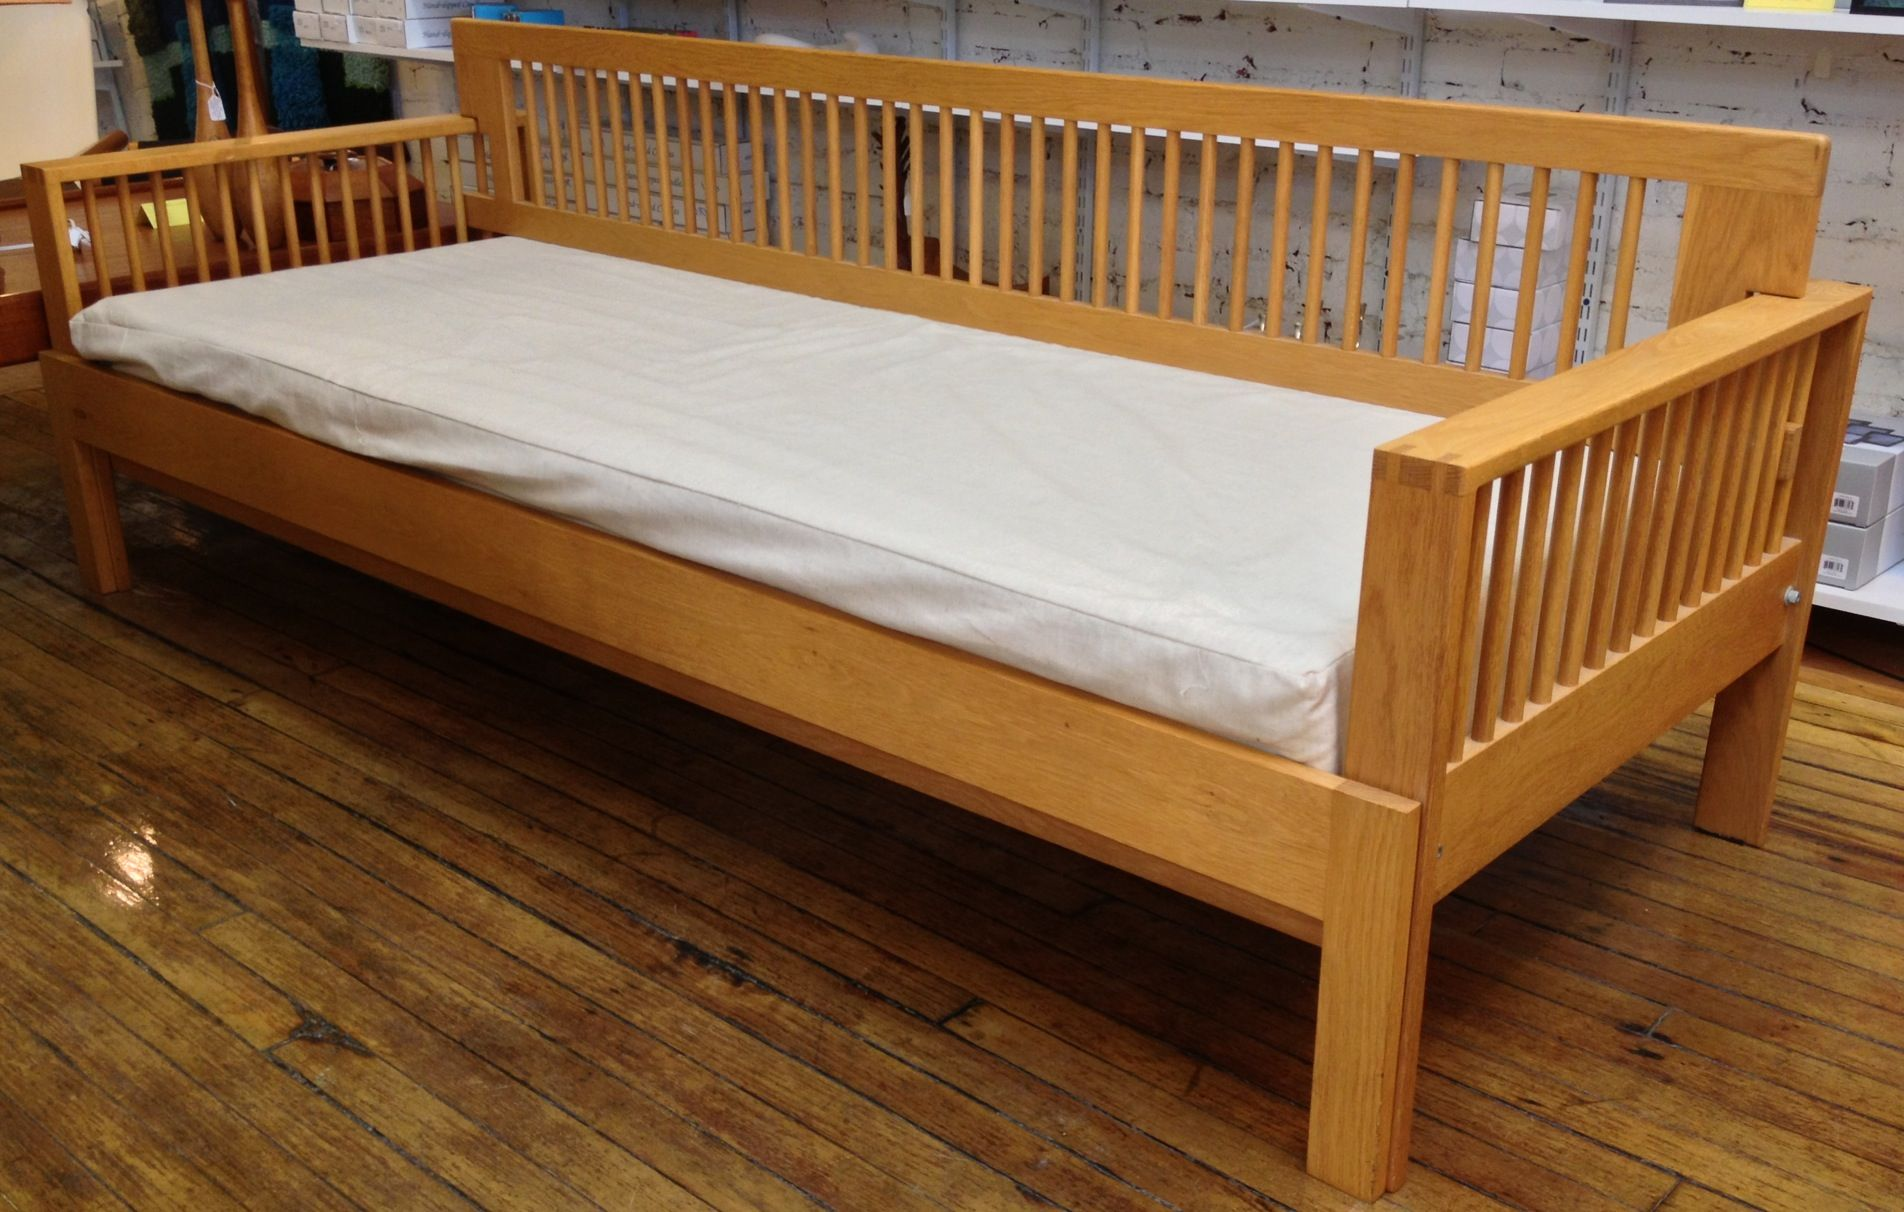 Lovely Charles Webb Daybed + Sofa Combo. The Cushions Pull Out To Make A Full Bed